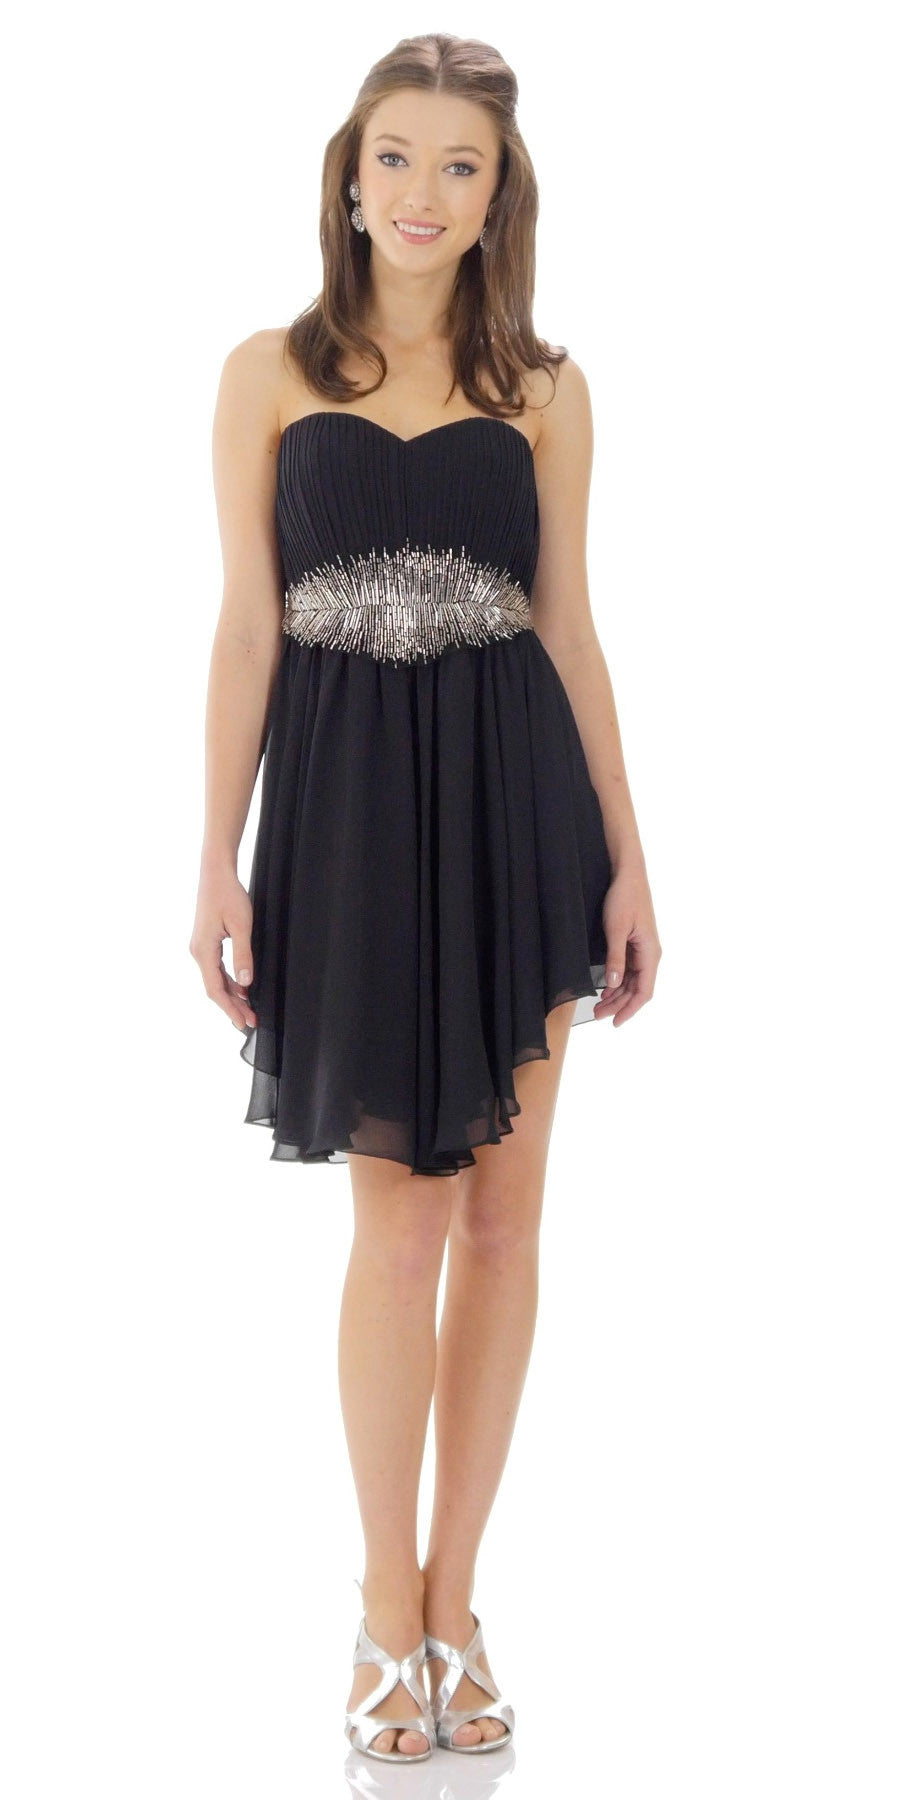 ON SPECIAL LIMITED STOCK - Asymmetrical Sweetheart Neck Black Silver Cocktail Dress